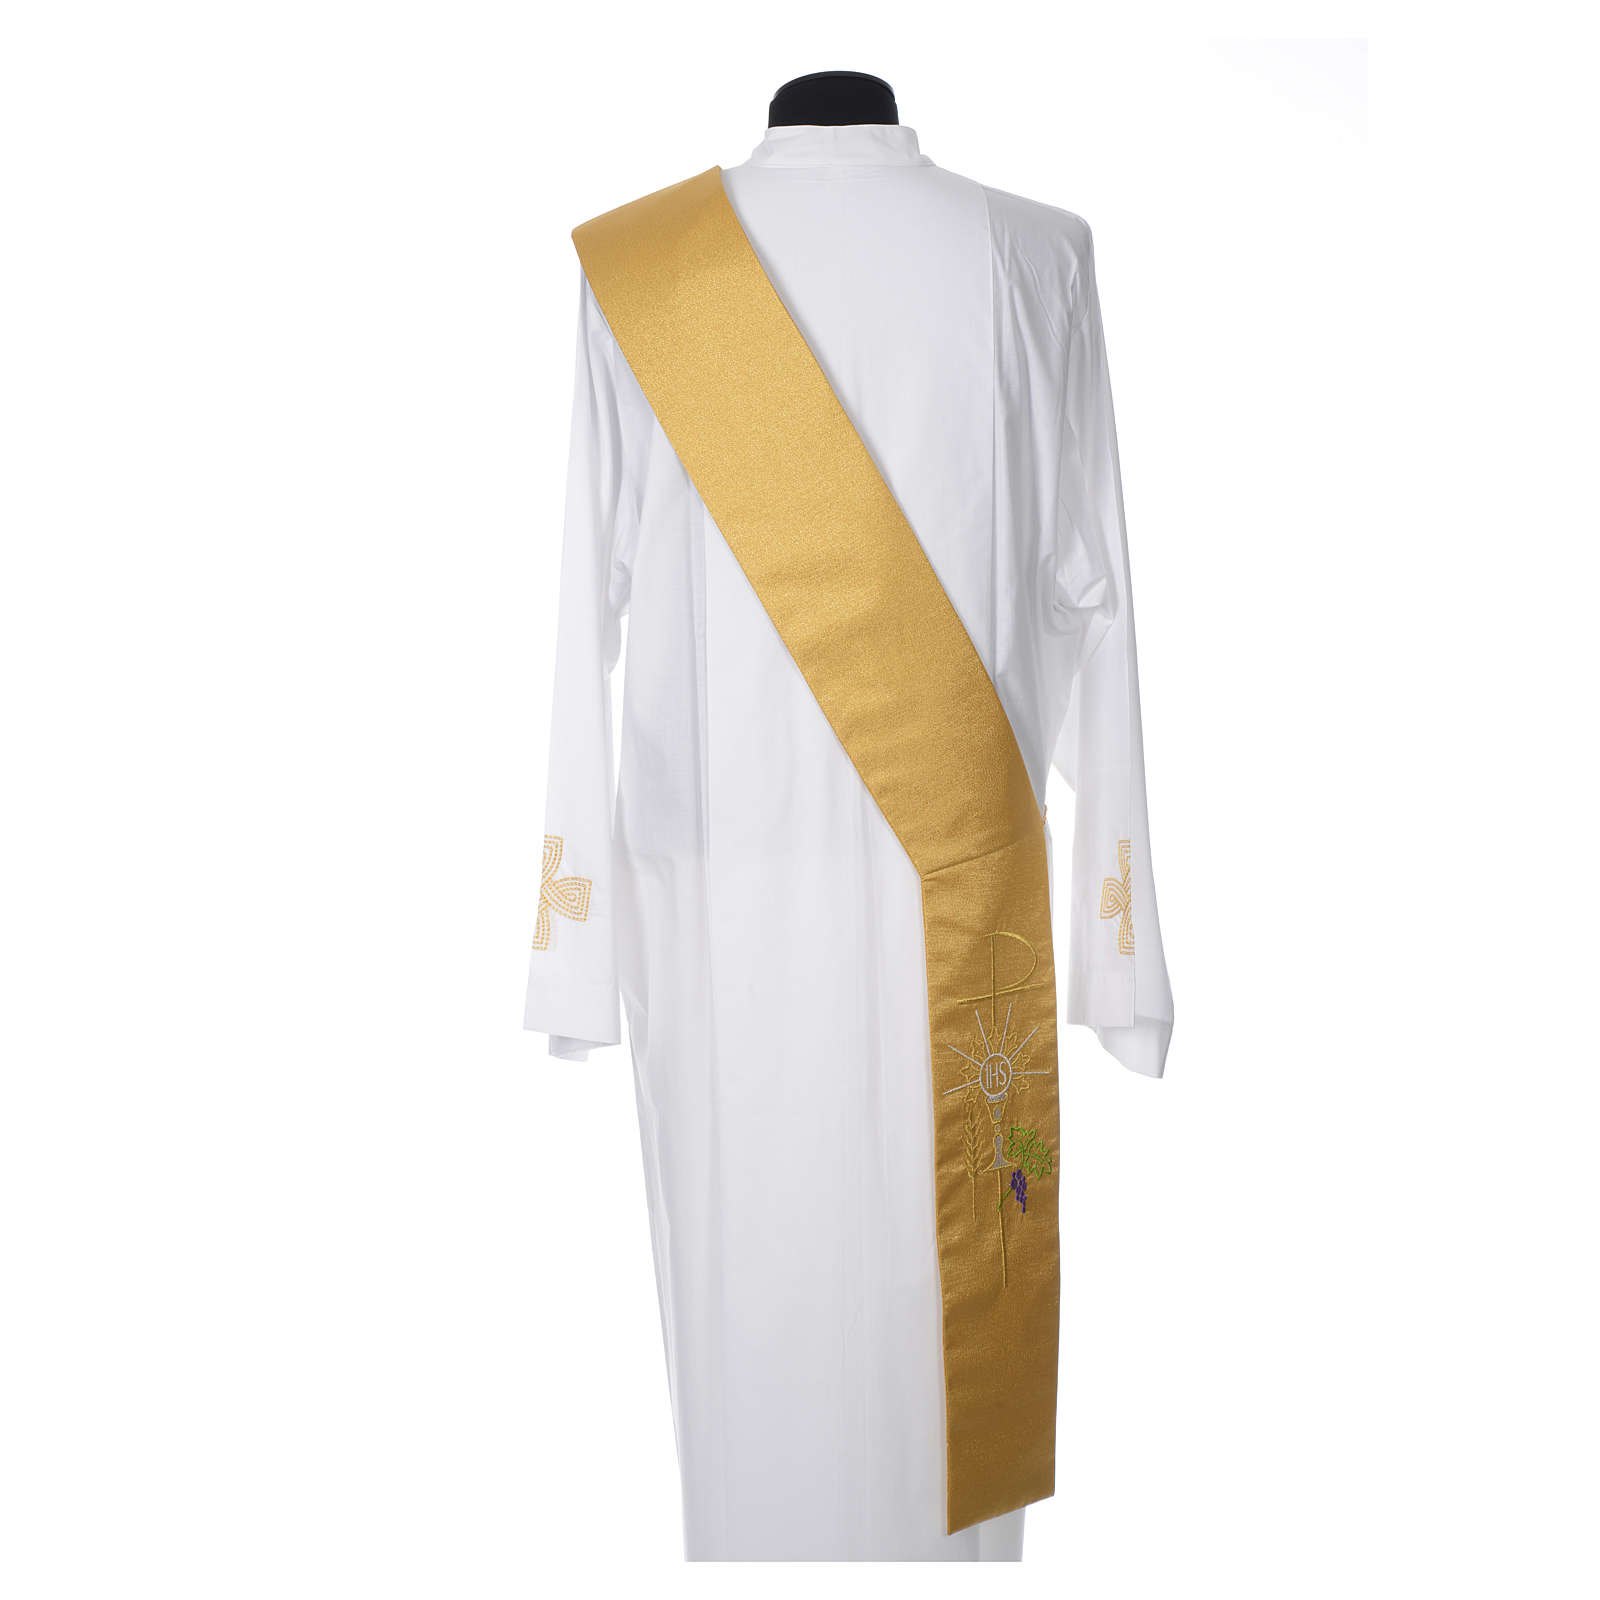 Gold Diaconal stole with chalice, host and grapes 4